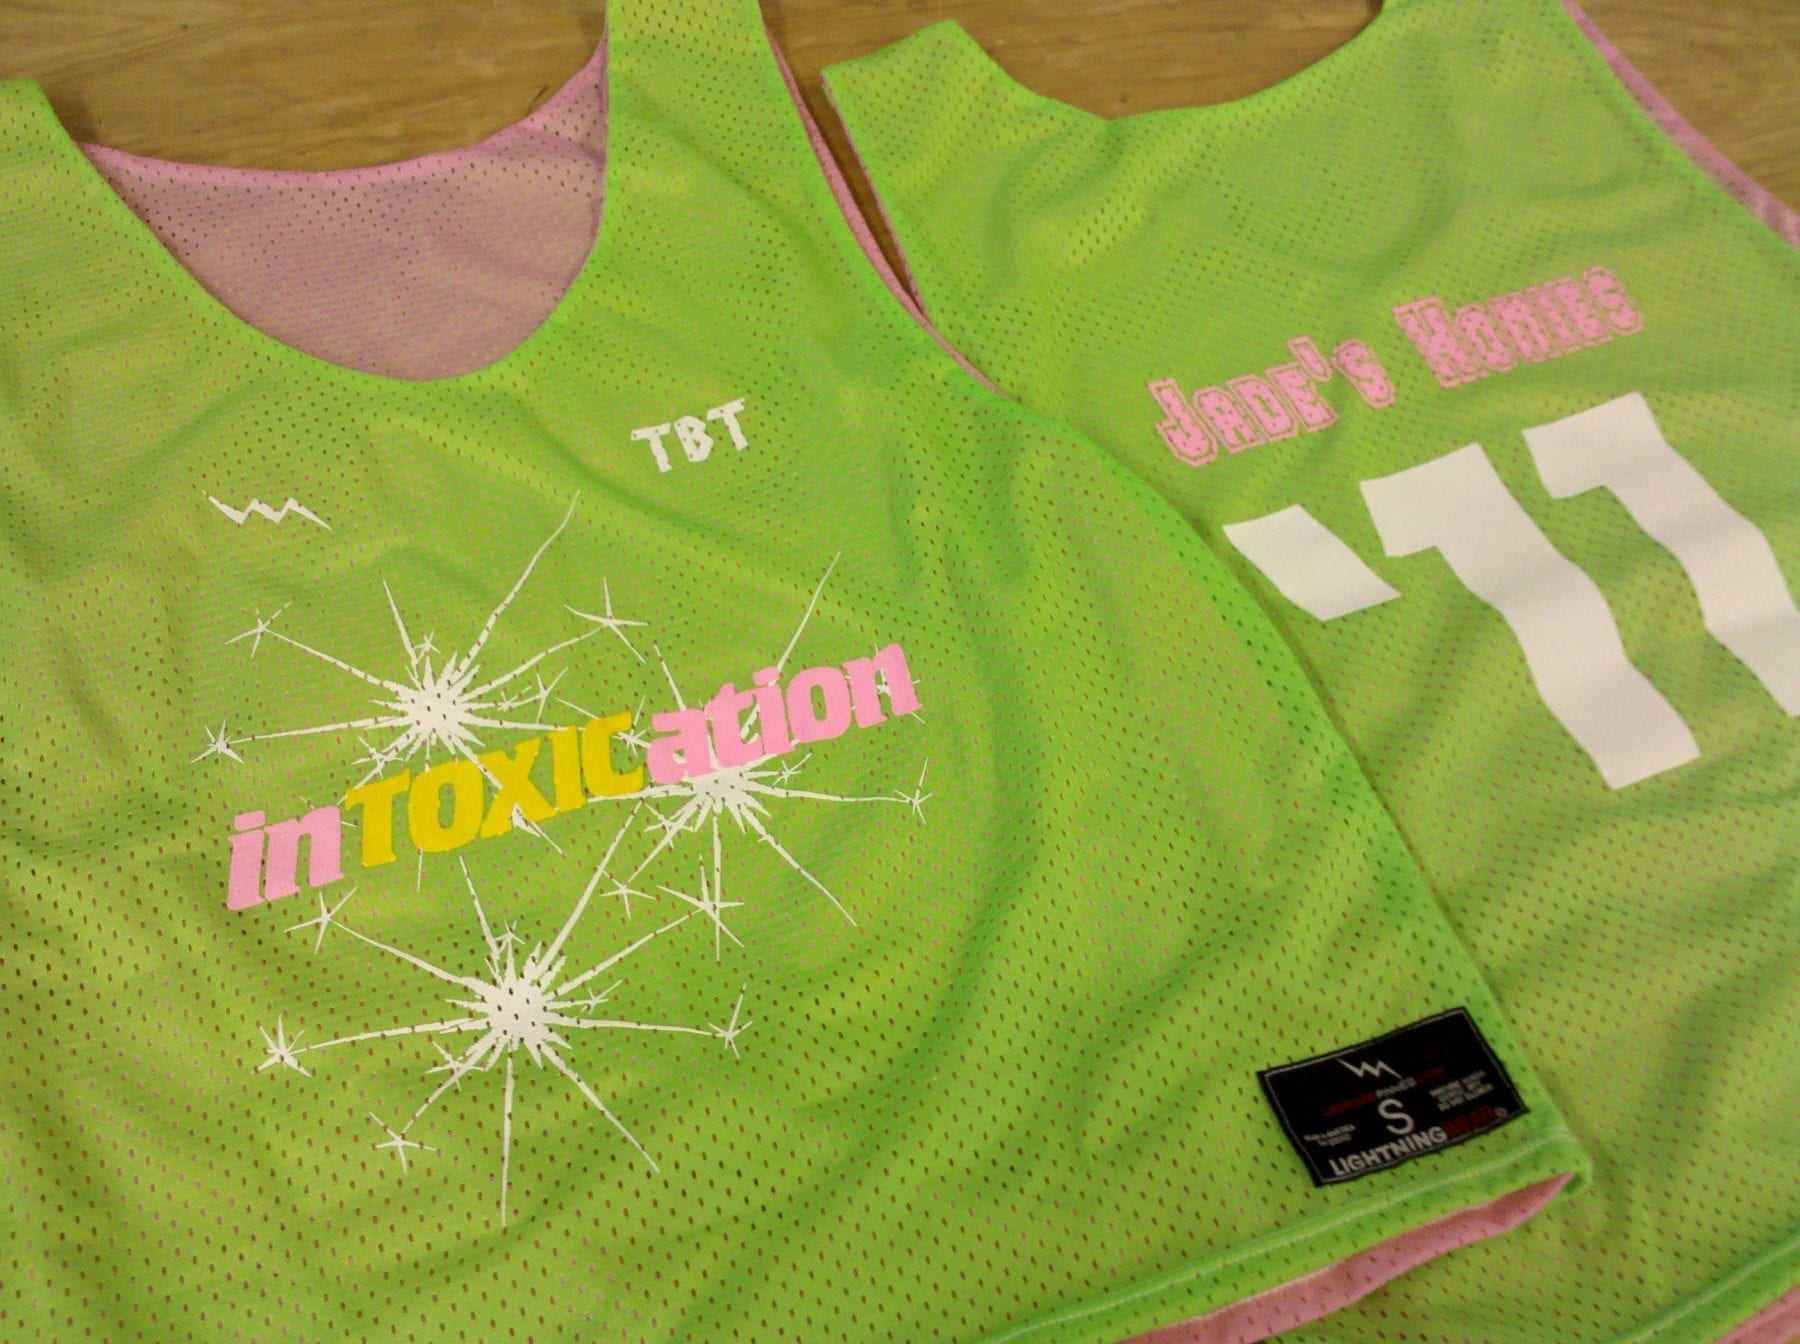 intoxication pinnies